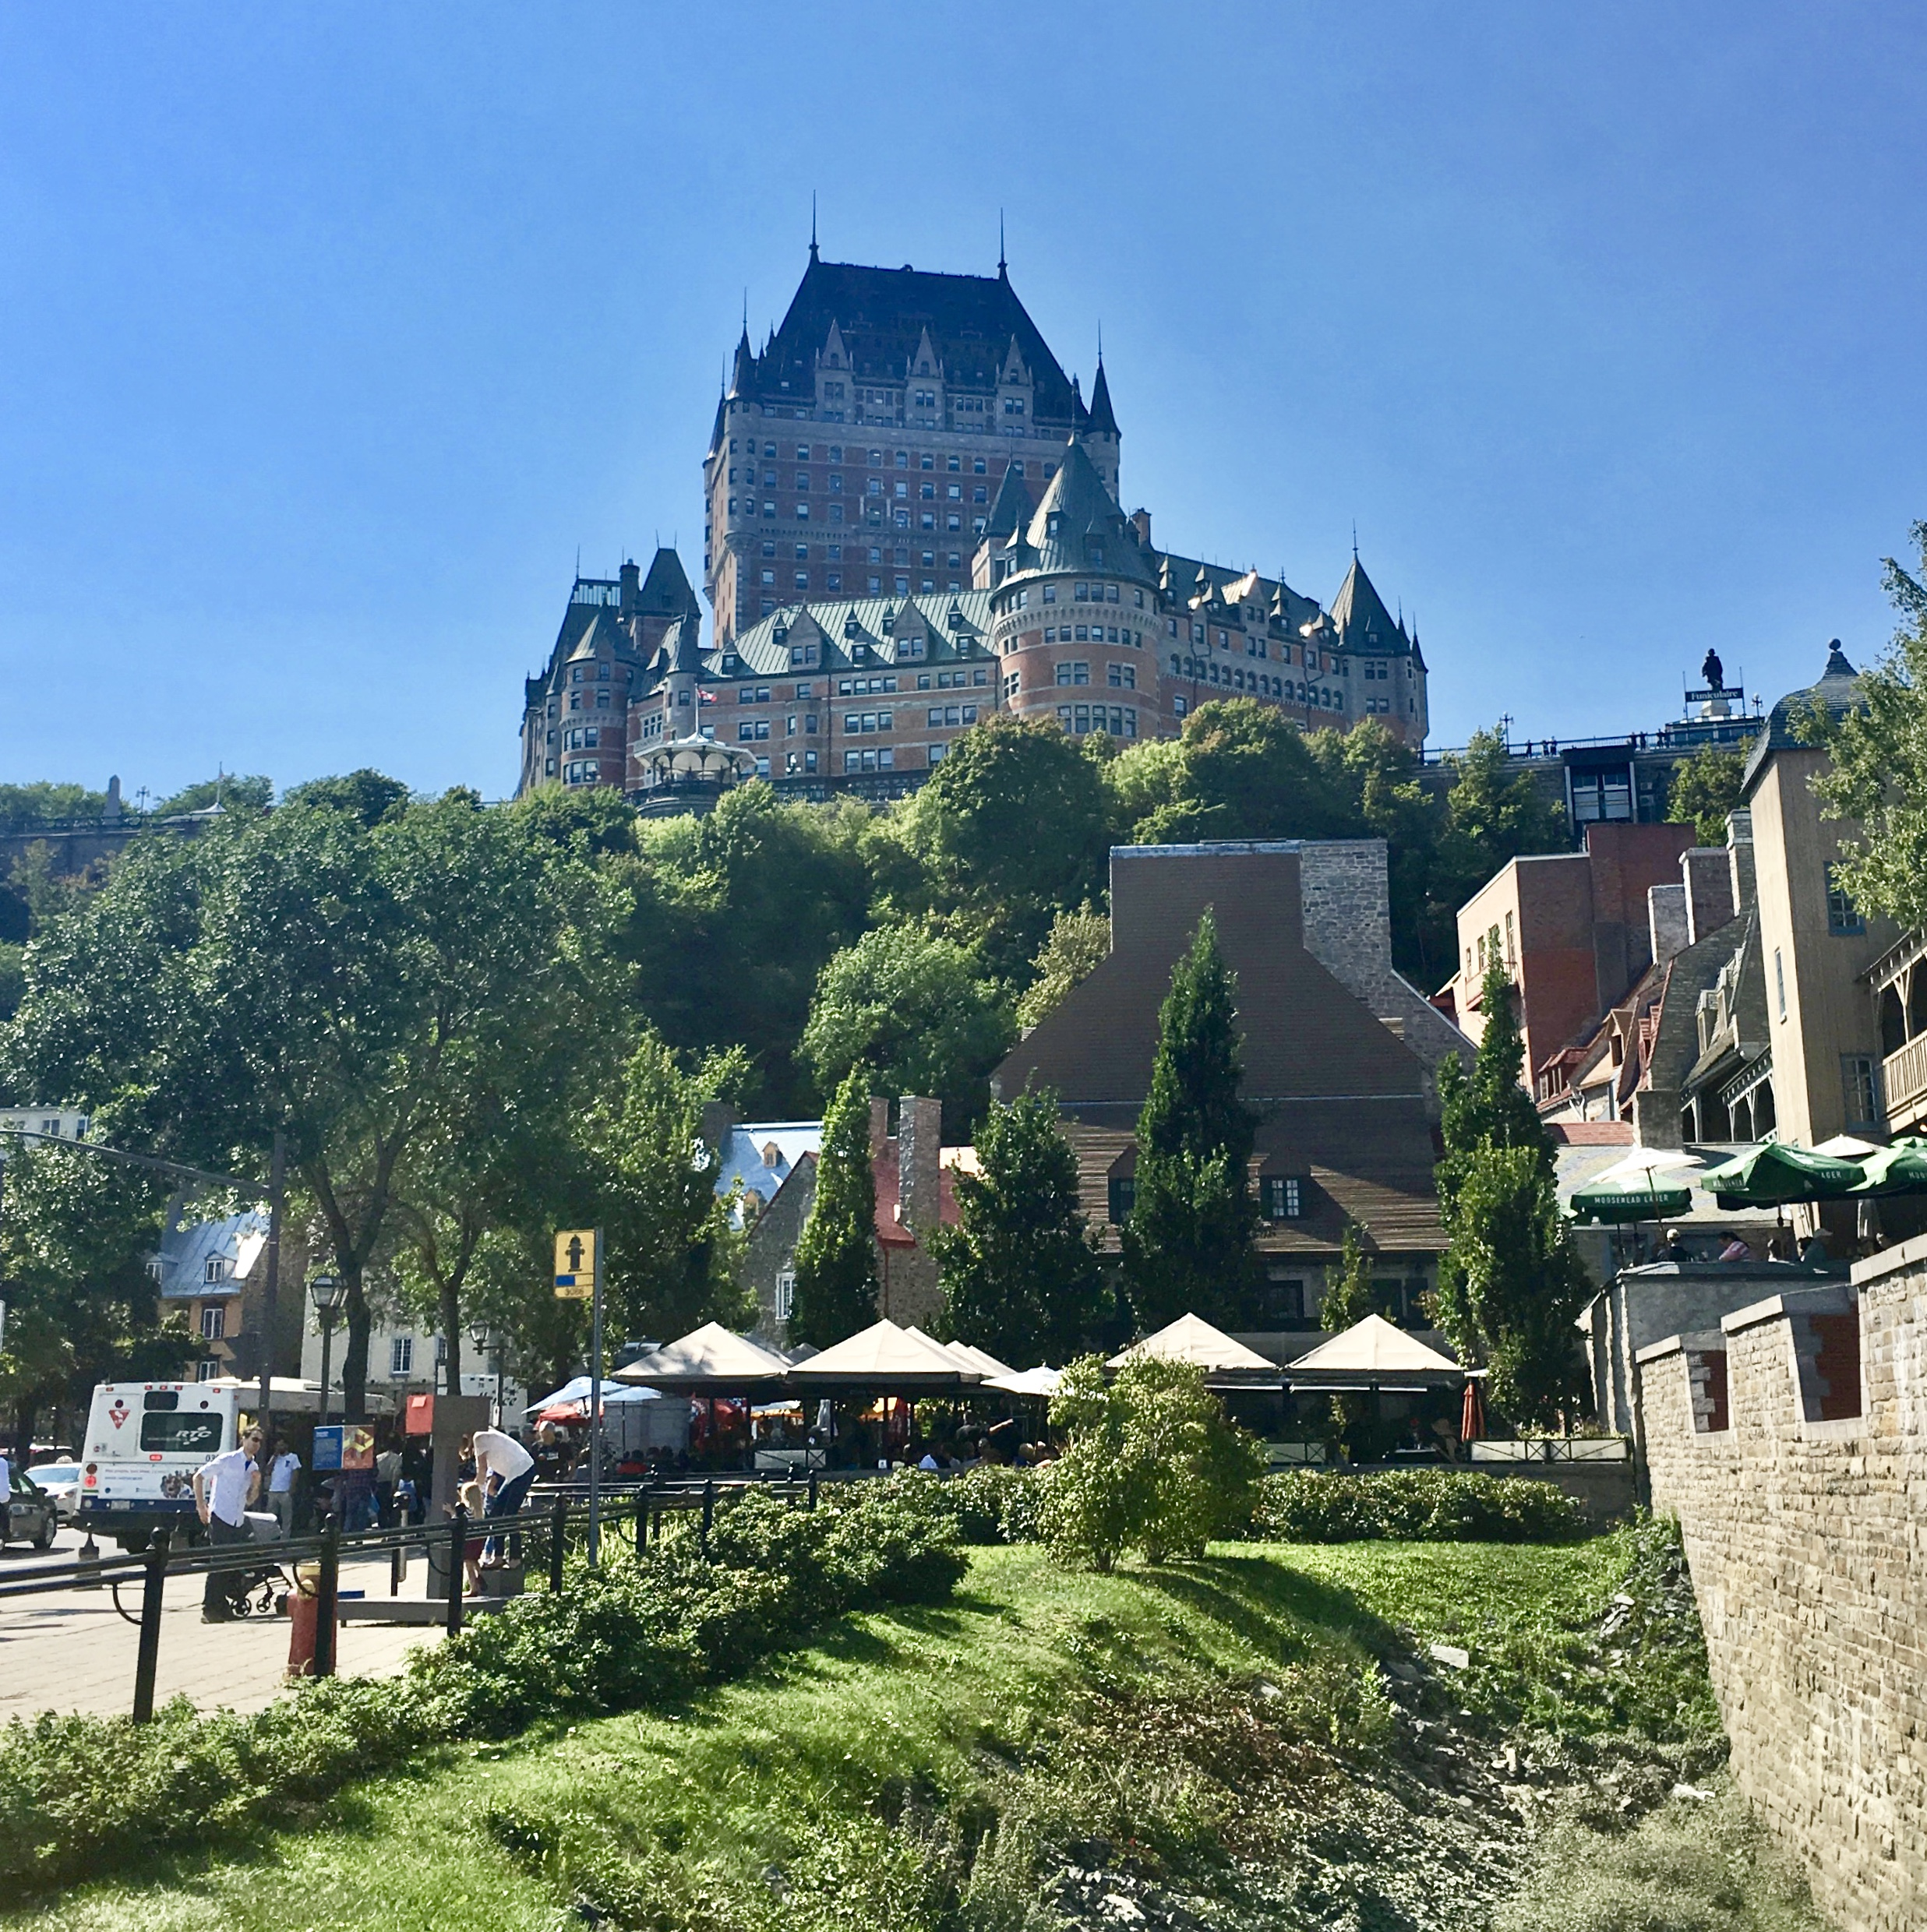 a view of Chateau Le Frontenac in Old Quebec City, Canada